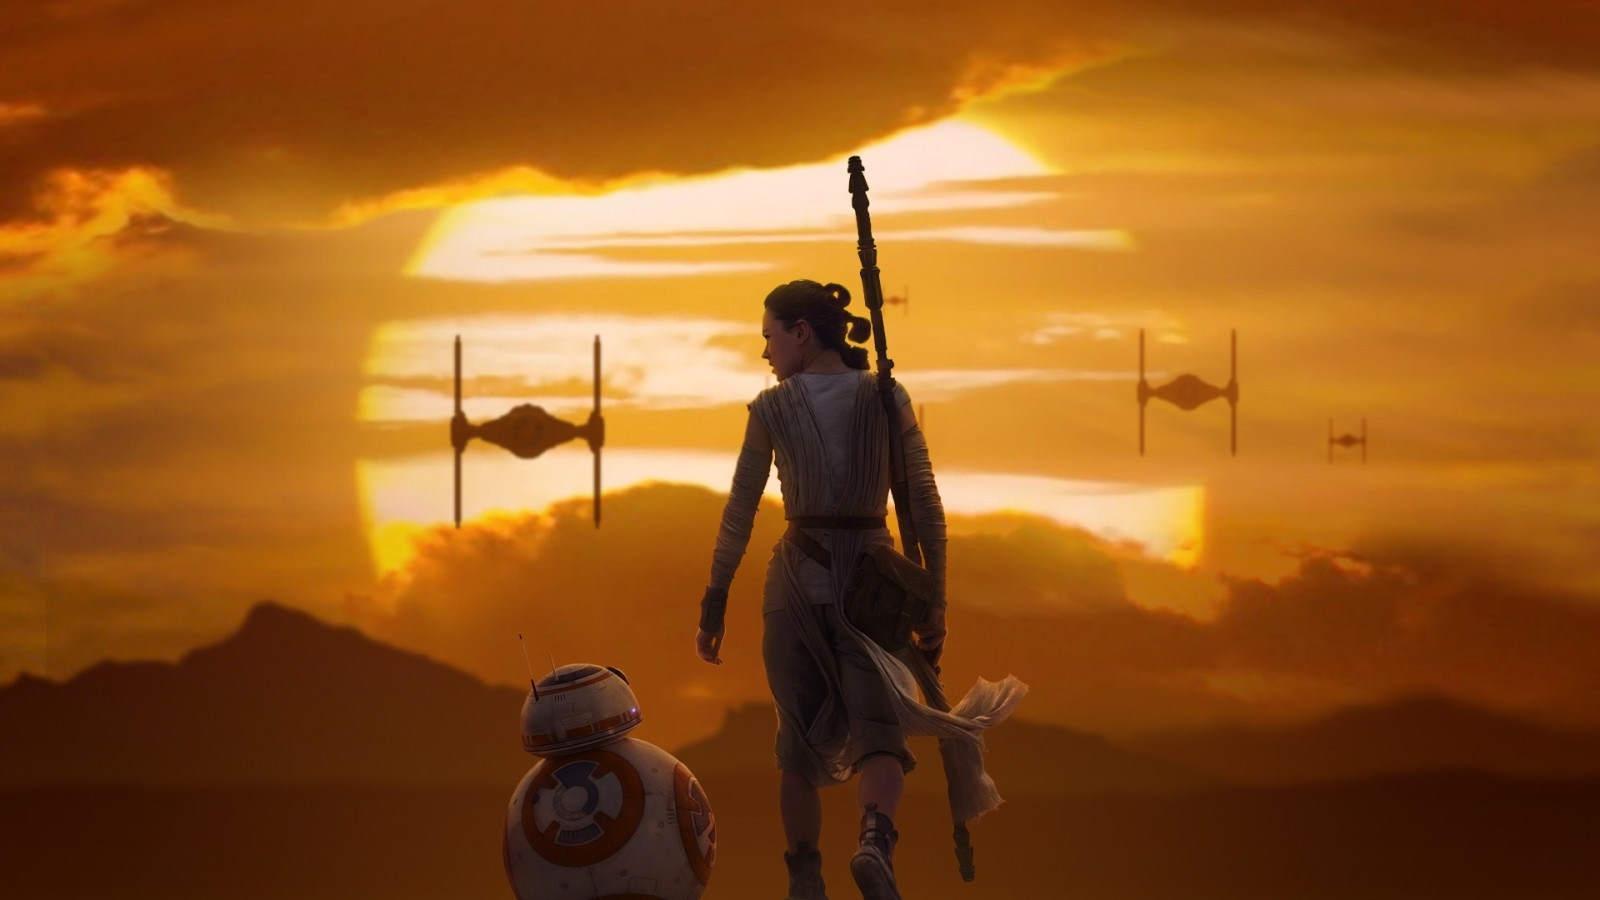 rey__bb_8_star_wars_the_force_awakens-HD-1600x900.jpg